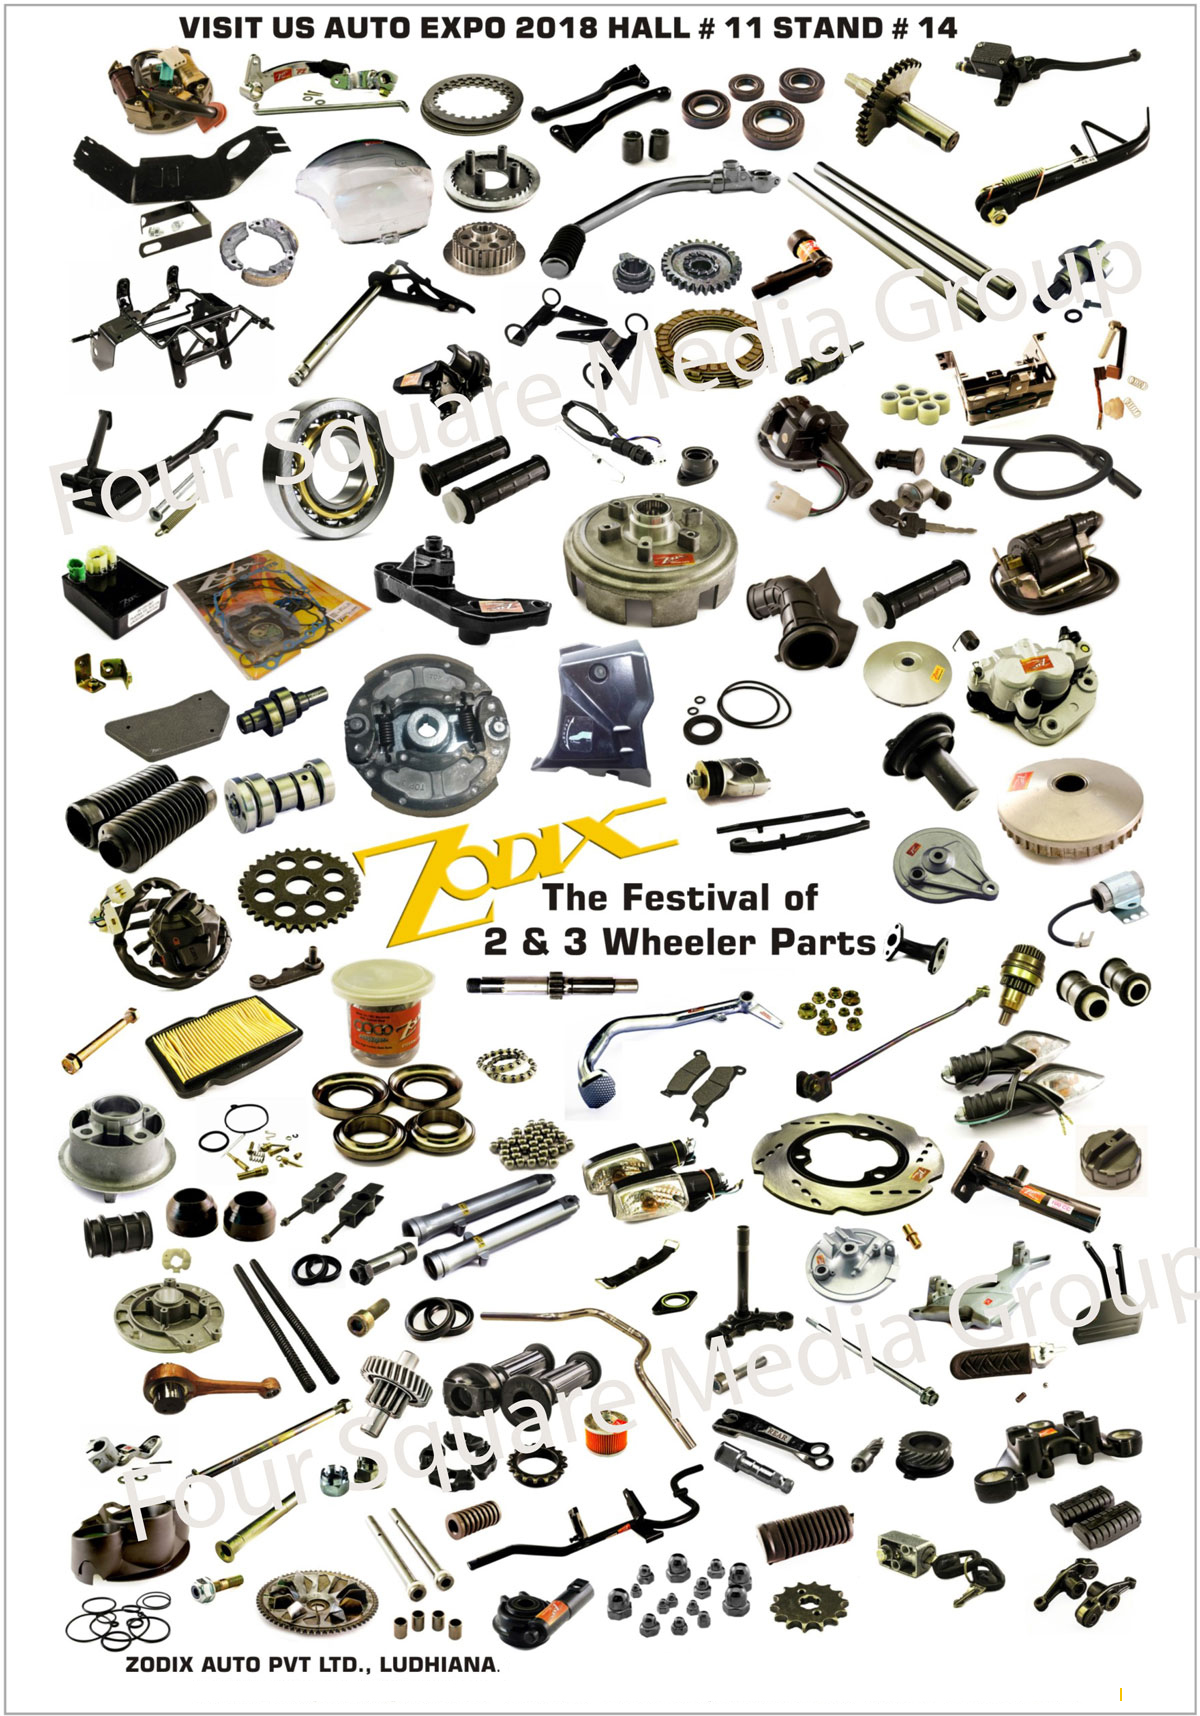 Automotive Spare Parts | Two Wheeler Spare Parts | Three Wheeler ...